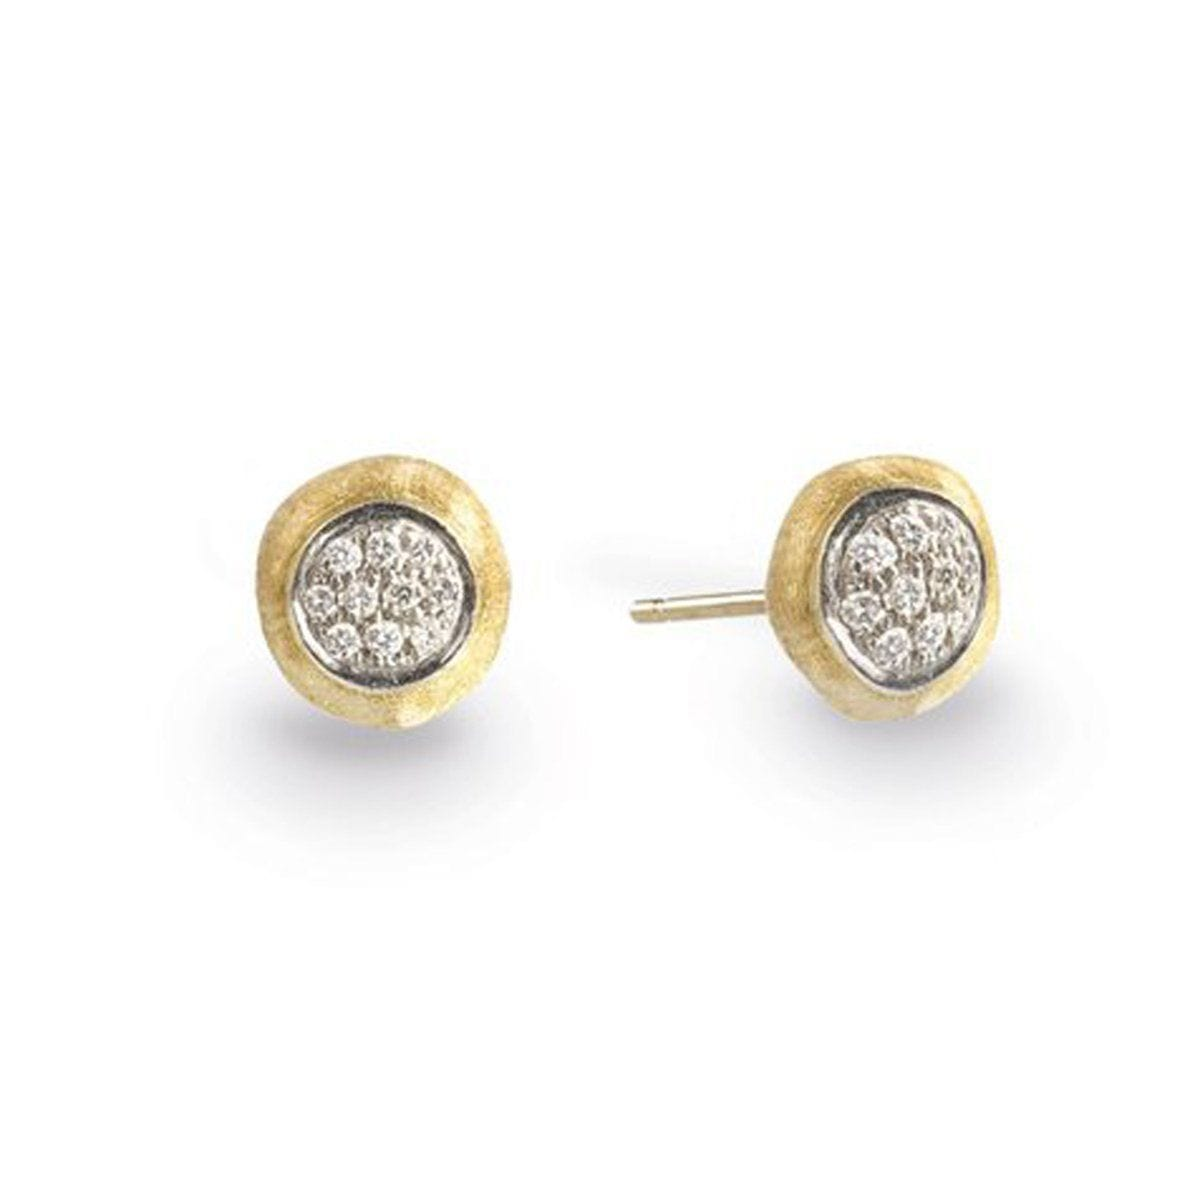 Delicati Diamond Pave Small Stud Earrings - OB1377 B YW-Marco Bicego-Renee Taylor Gallery